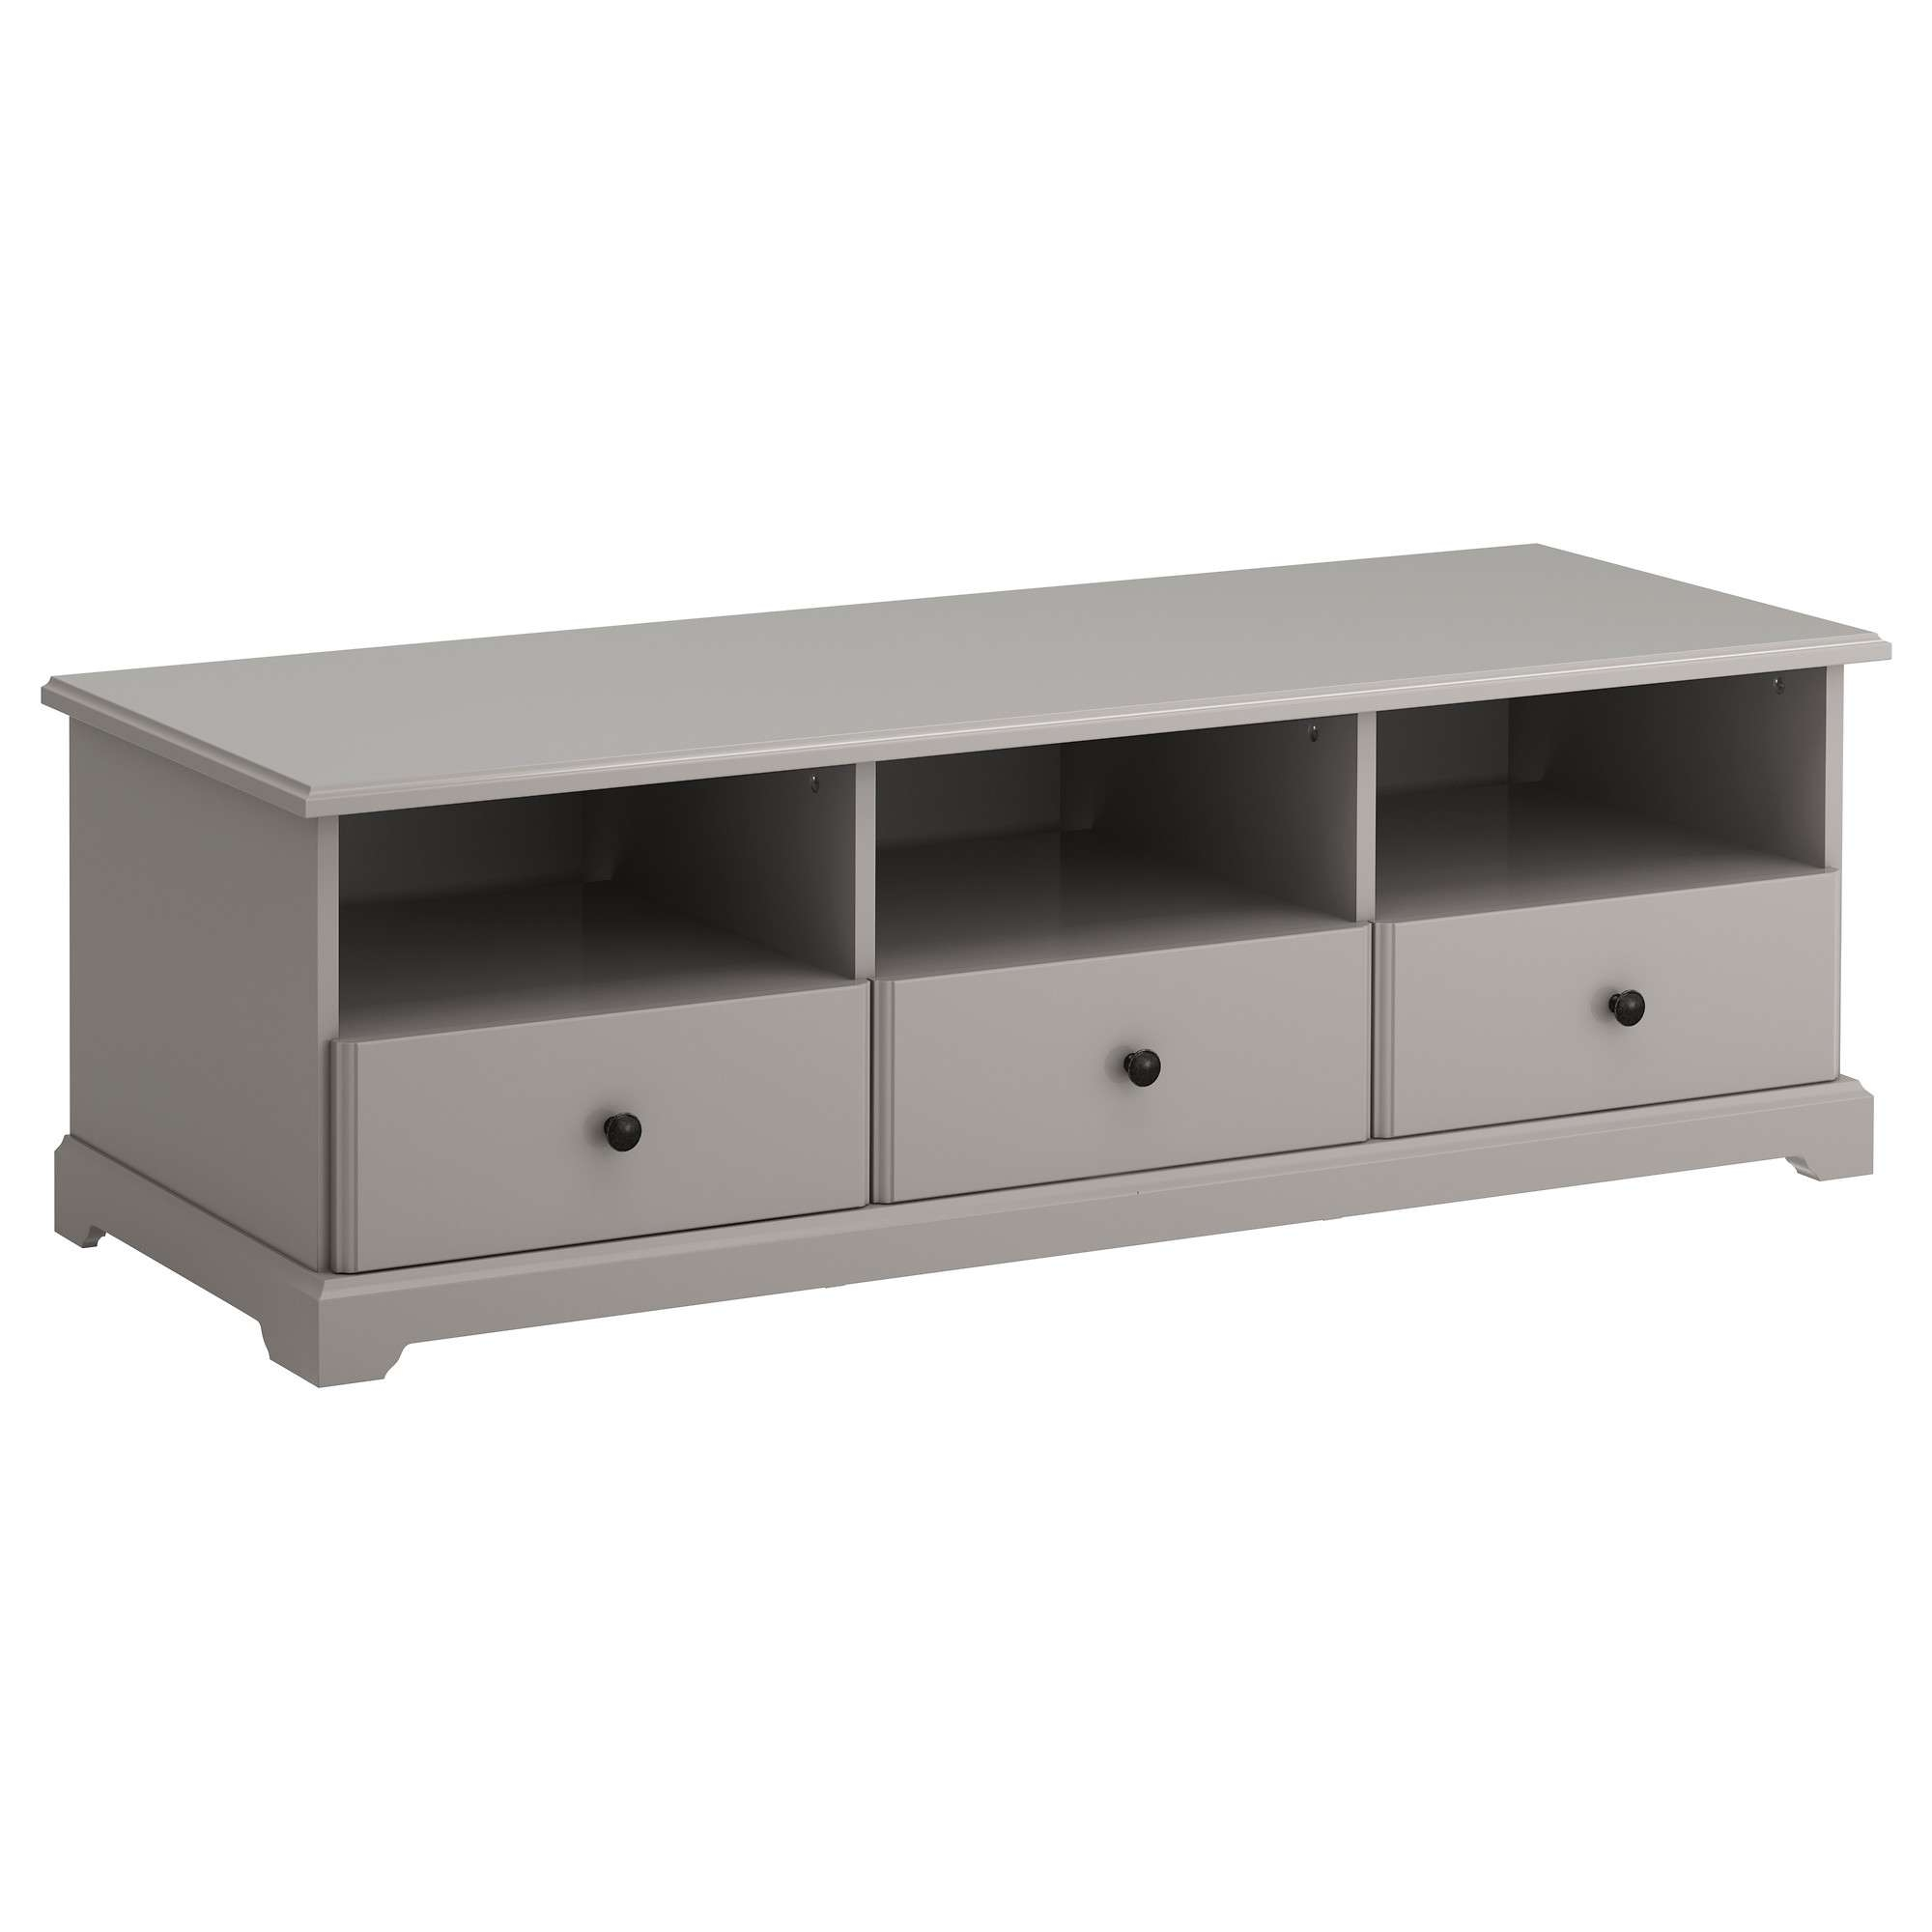 Liatorp Tv Bench Grey 145X49X45 Cm – Ikea Inside Grey Tv Stands (View 8 of 15)